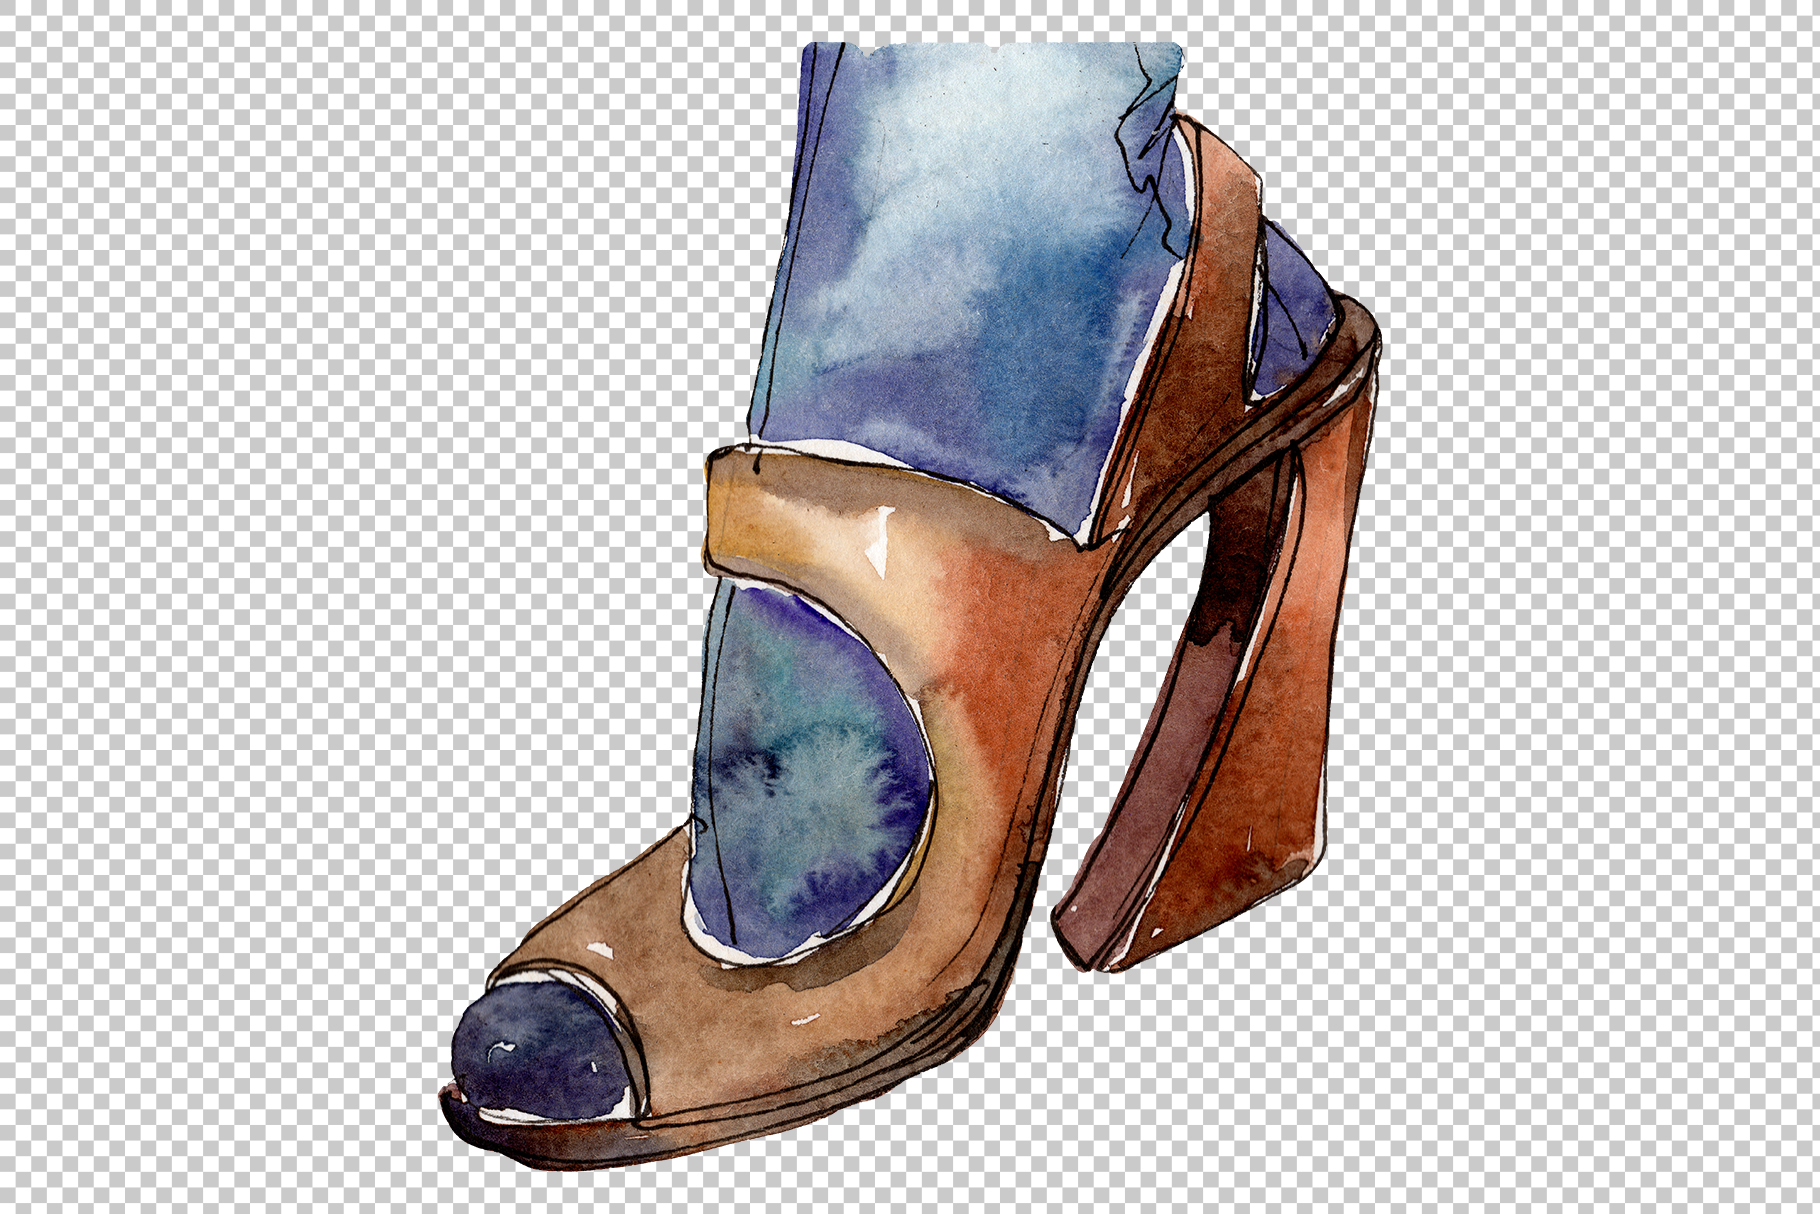 Fashion and style watercolor png example image 6